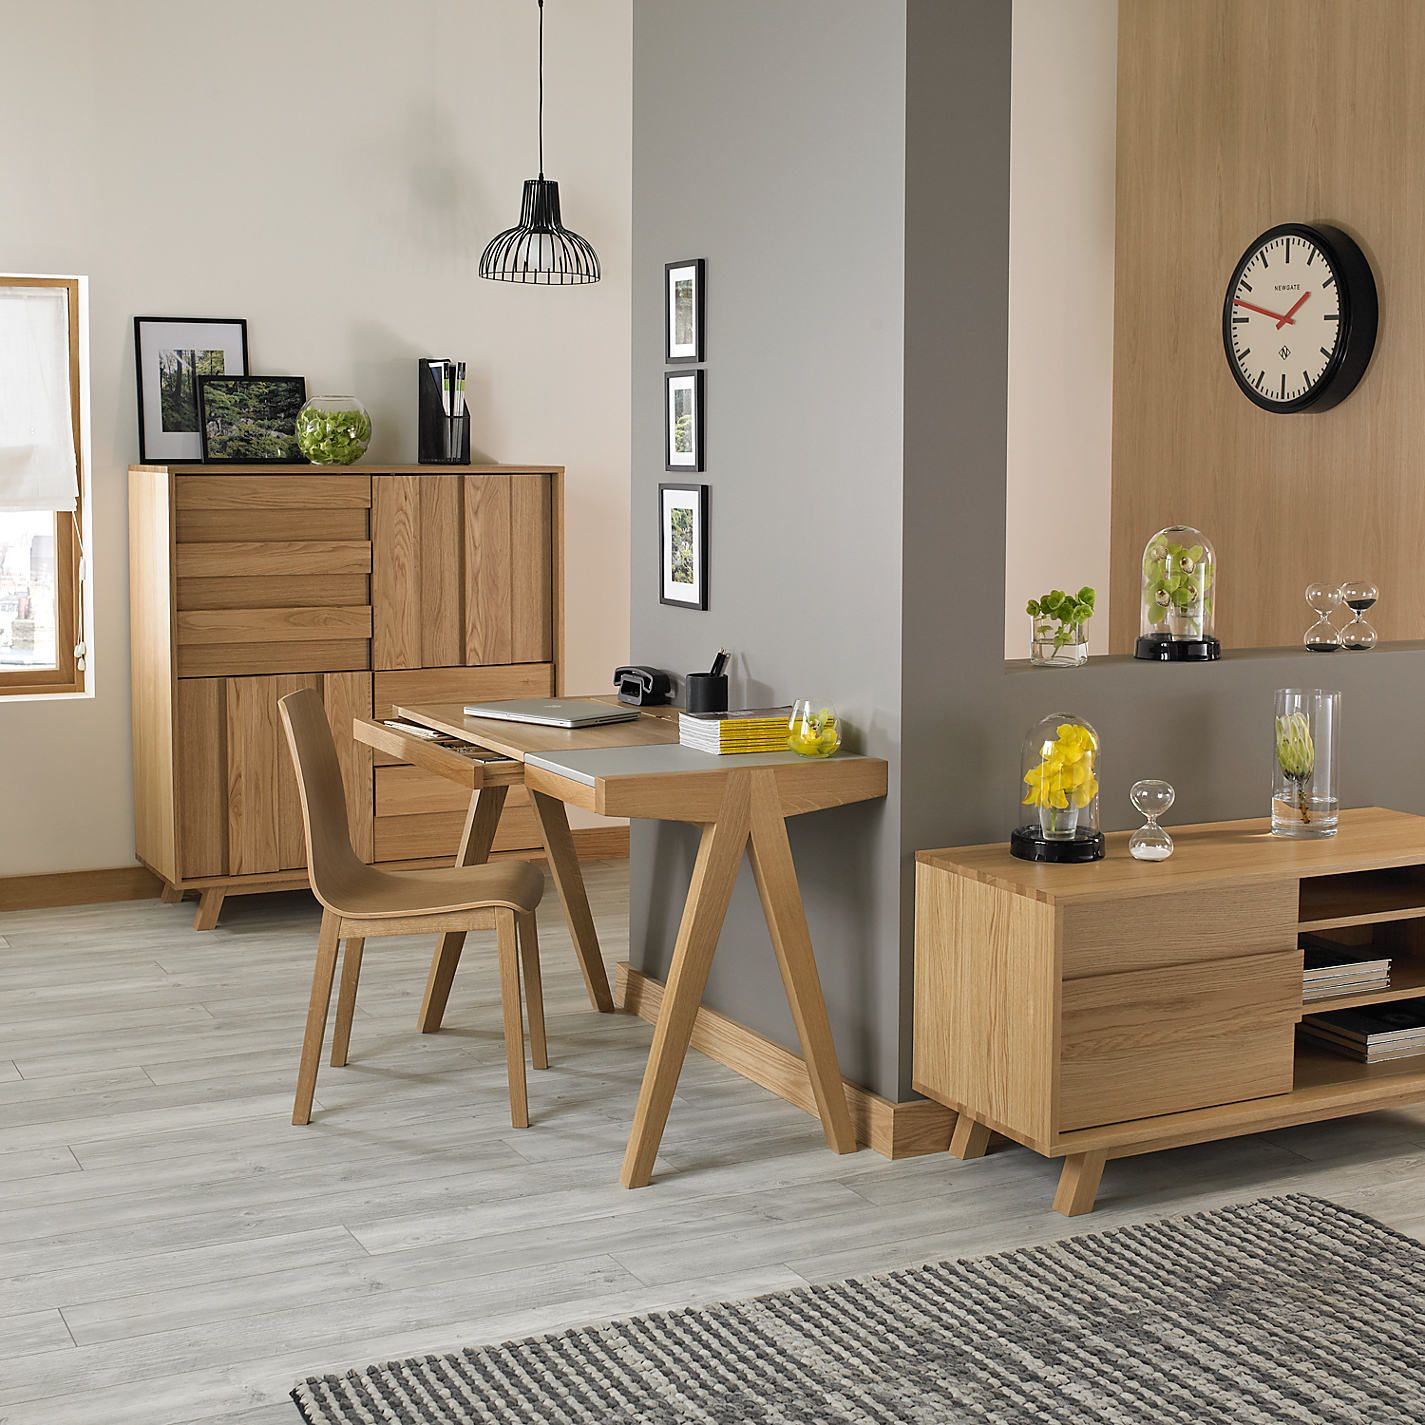 Grey Wood Flooring And Oak Furniture Grey Flooring Living Room Oak Dining Room Table Living Room Wood Floor